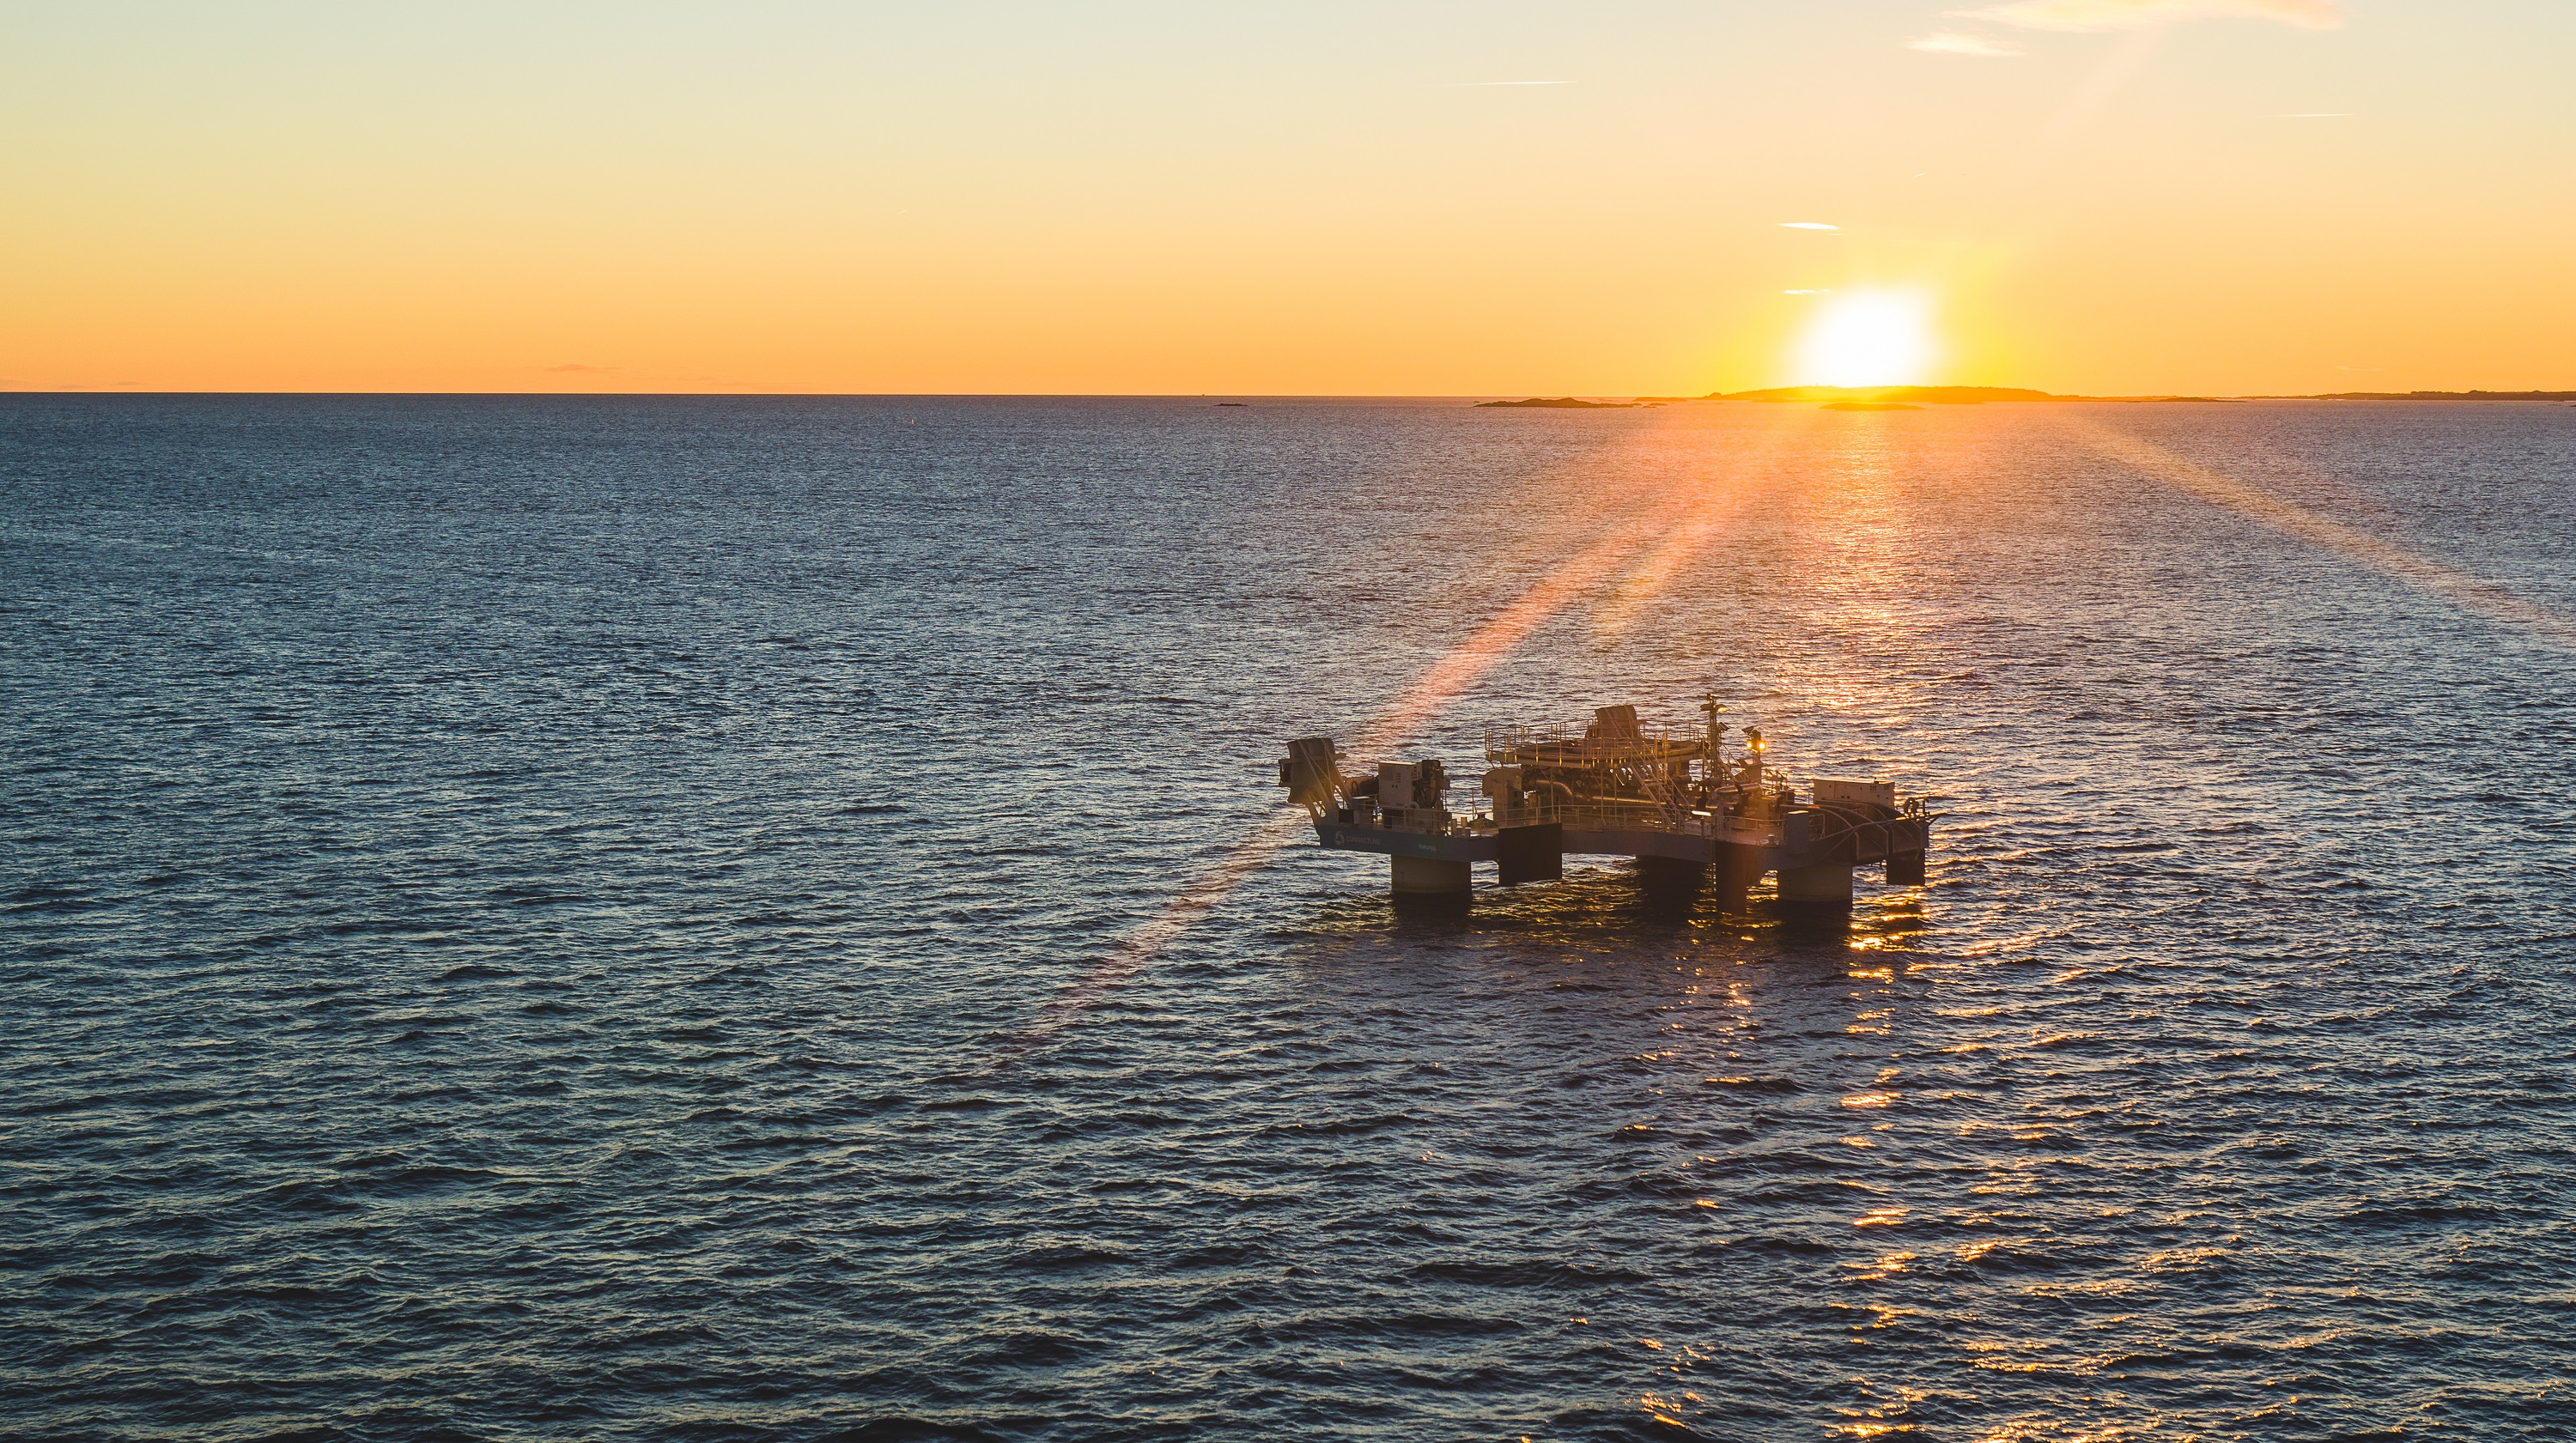 Floating lng transfer system in sunset